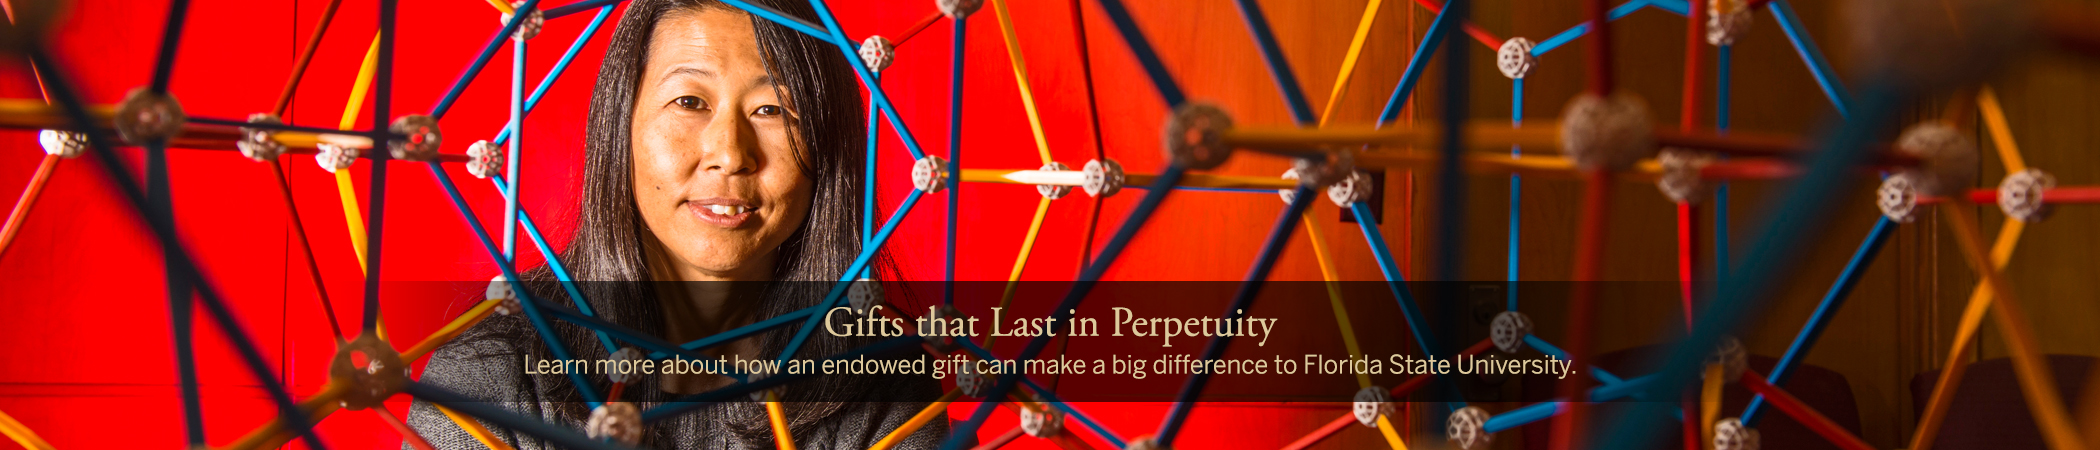 Gifts that Last in Perpetuity - Learn more about how an endowed gift can make a big difference to Florida State University.